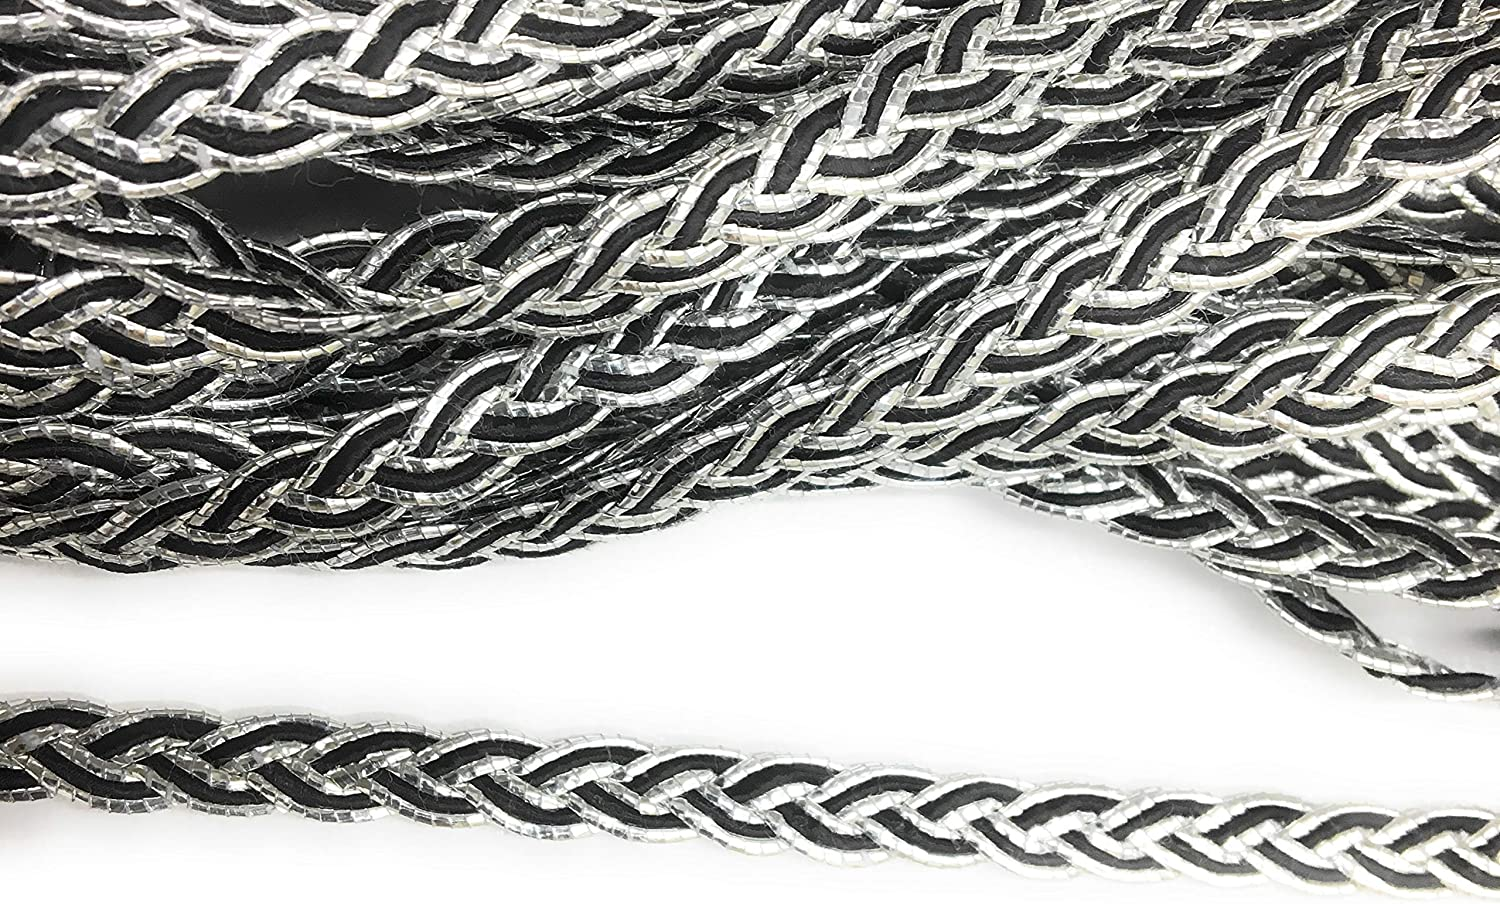 Dress Trims Upholstery Trims 3//8 Dress Trimming 6mm Trimmings 5 Yards Scallop Braid Silver Black Braided Cord Braid